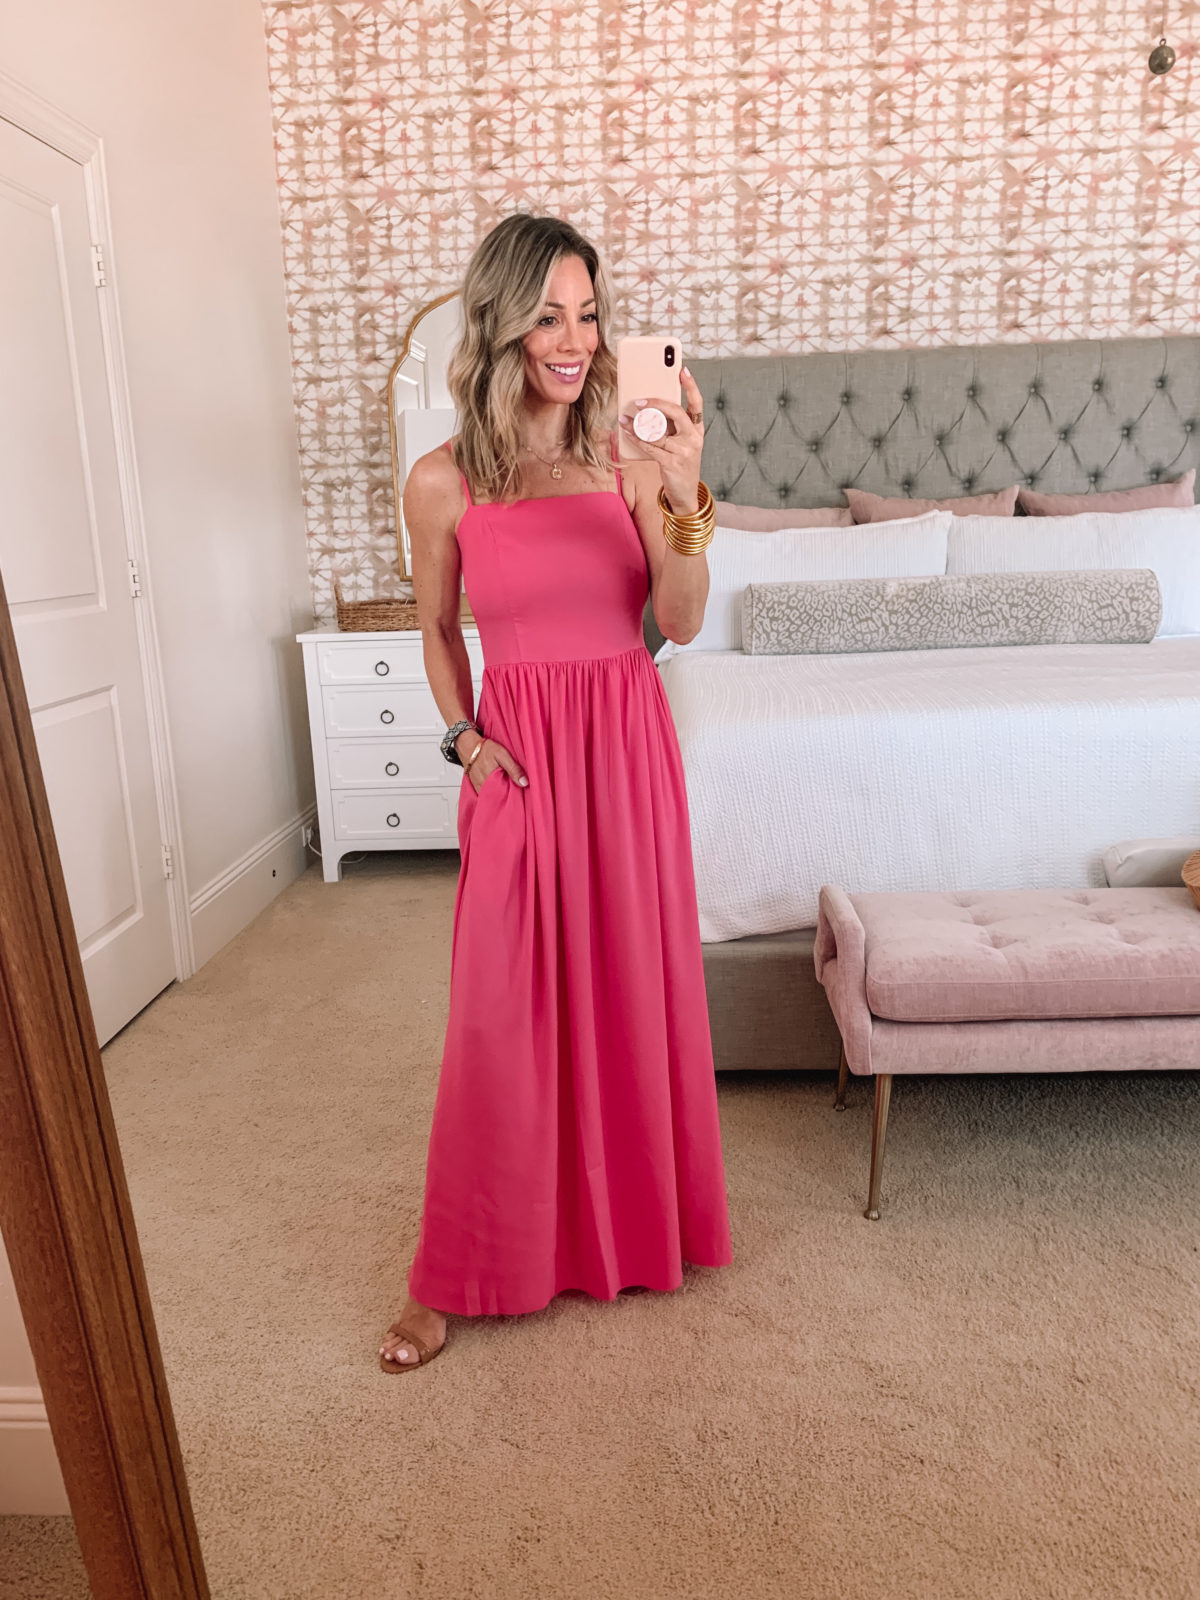 Amazon Fashion Faves, Pink Maxi Dress with Sandals